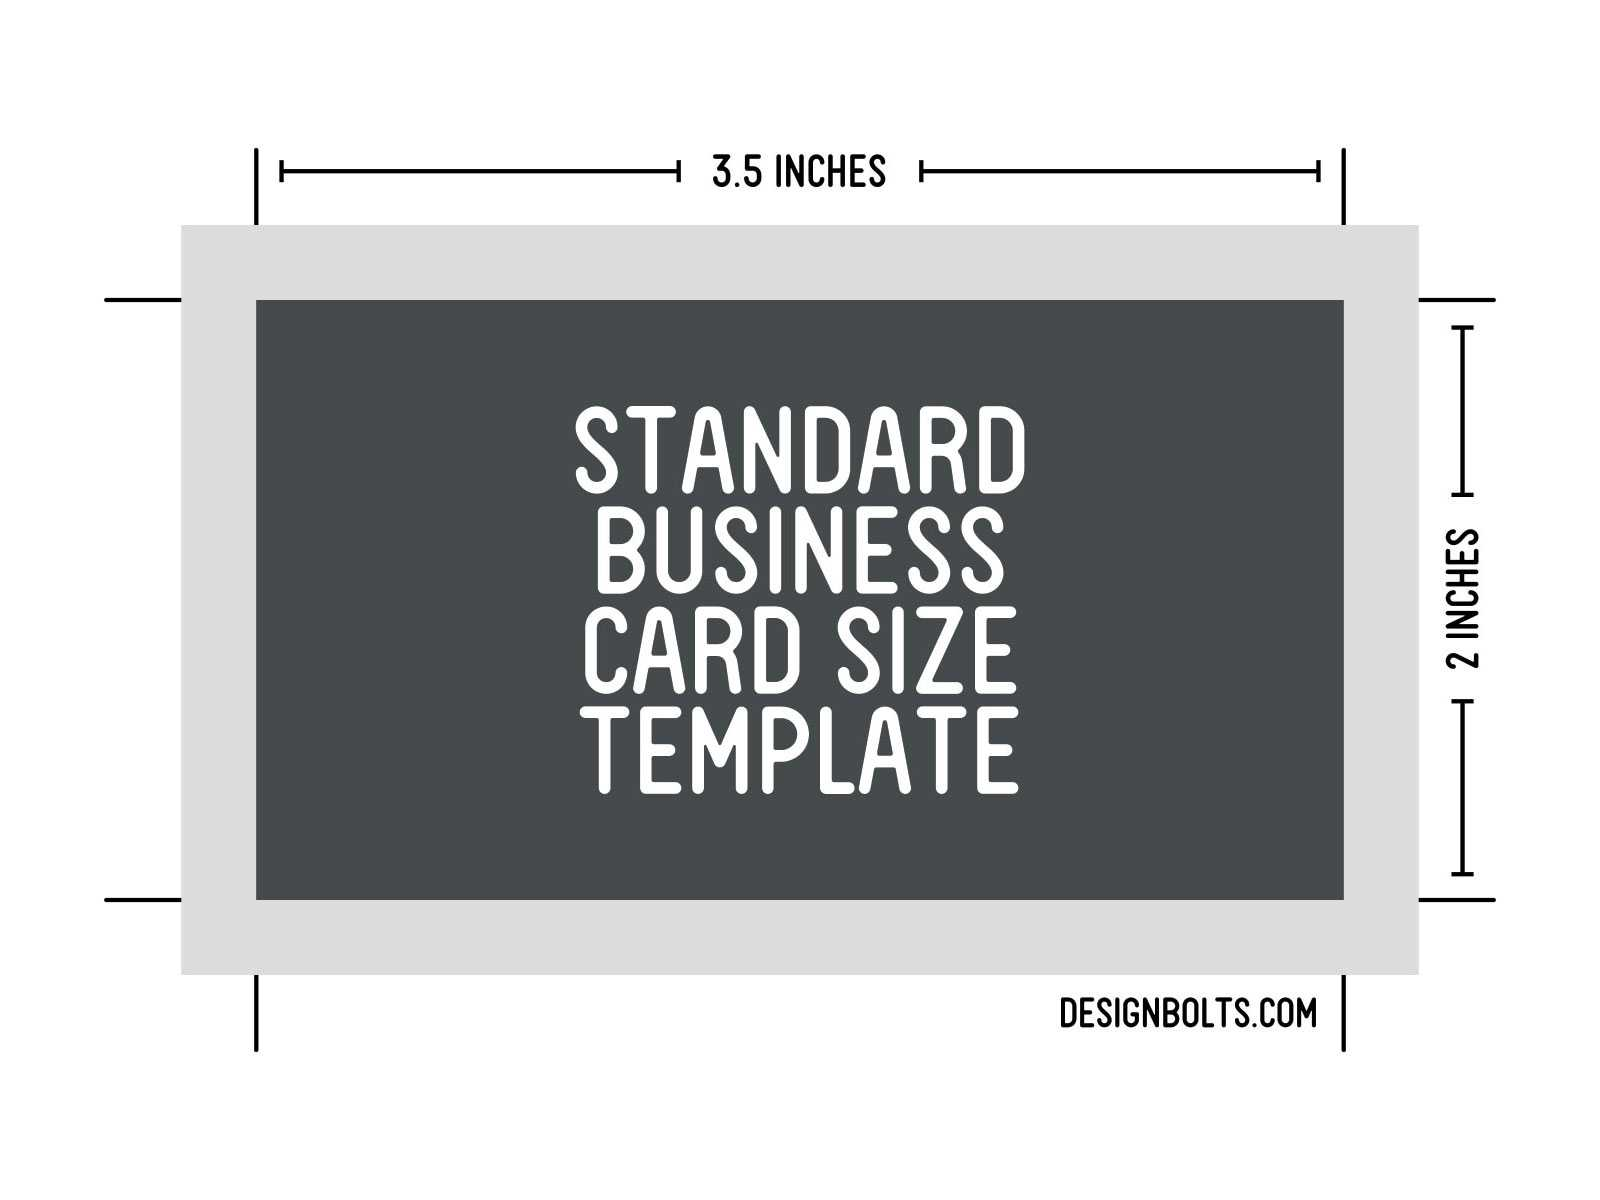 15 Psd Business Card Template Size Images - Standard Pertaining To Business Card Size Template Psd